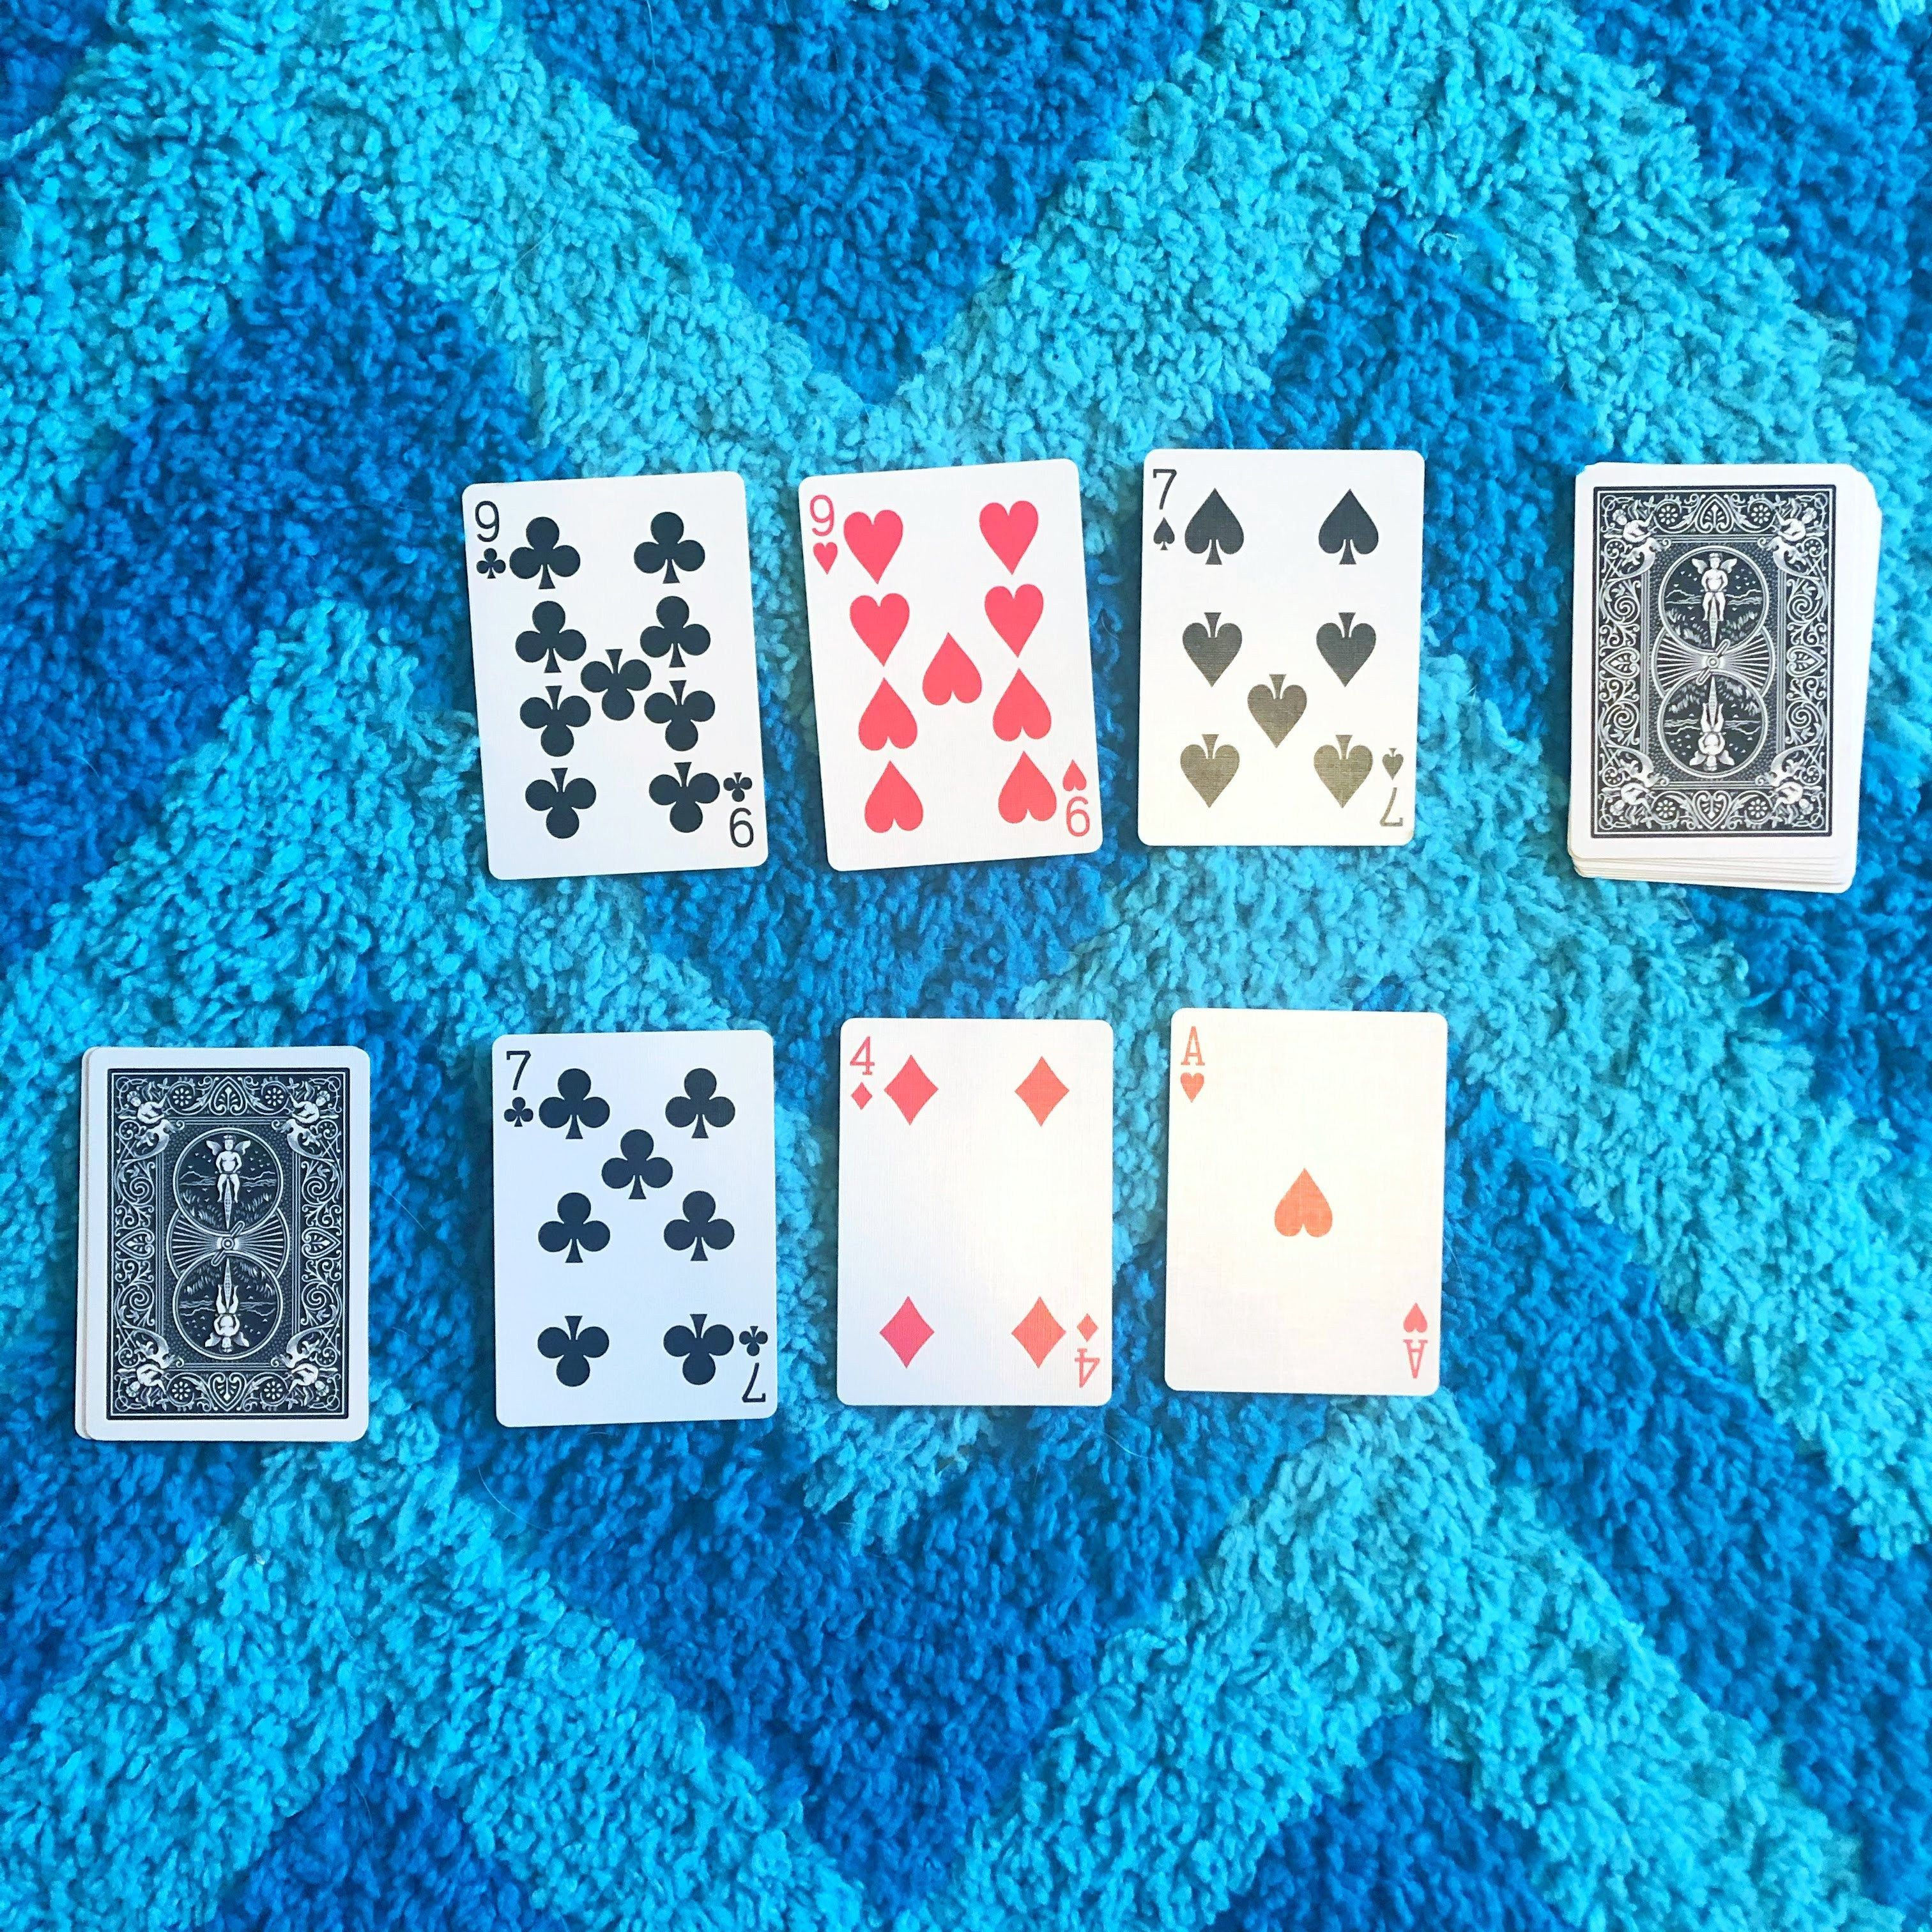 7 Fun Math Games For Kids Using Playing Cards